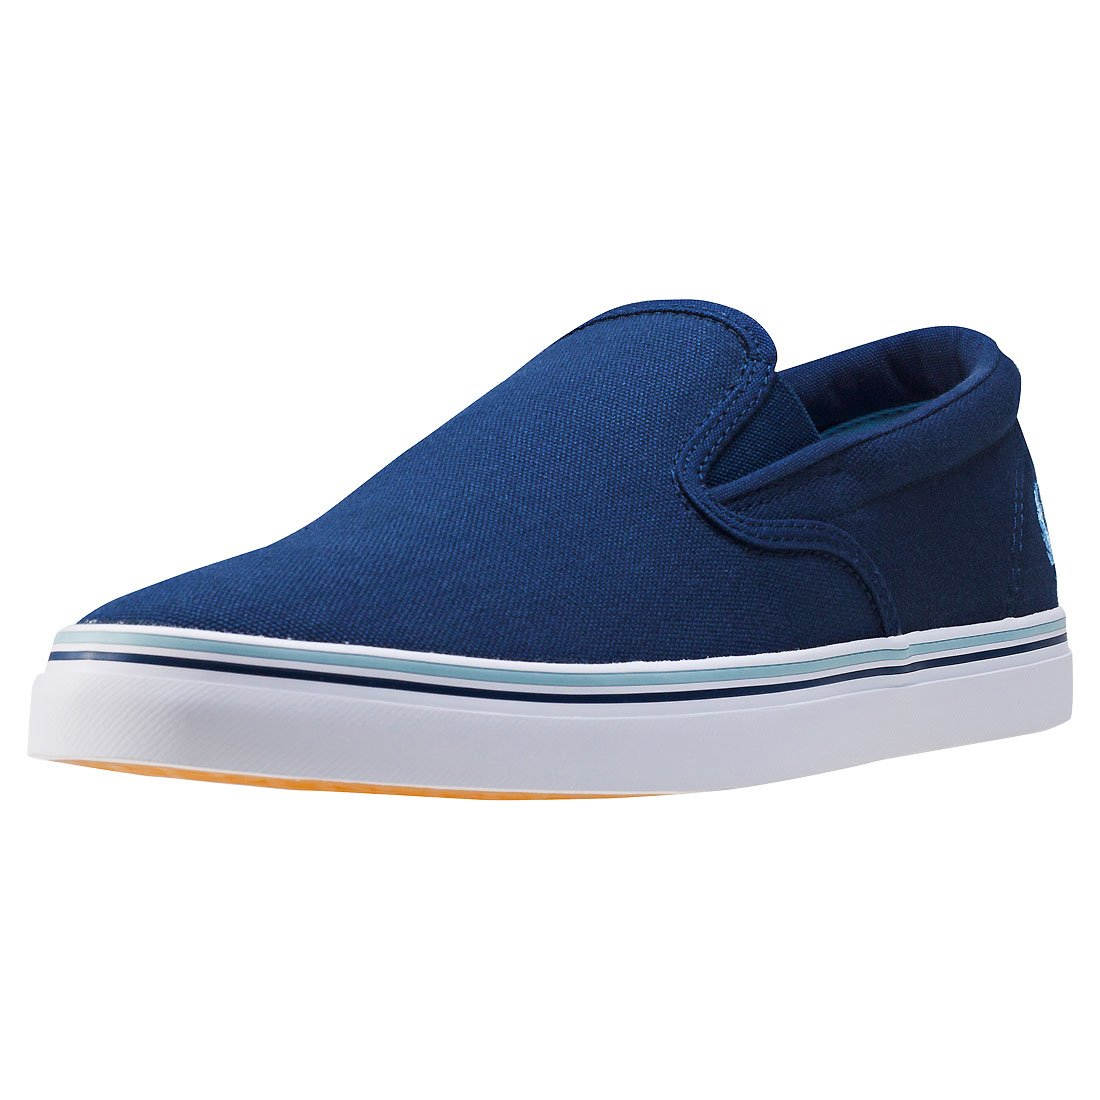 Frot Perry - Herren Blaue Marine Schuhe Underspin Slip on Canvas Carbon Blau